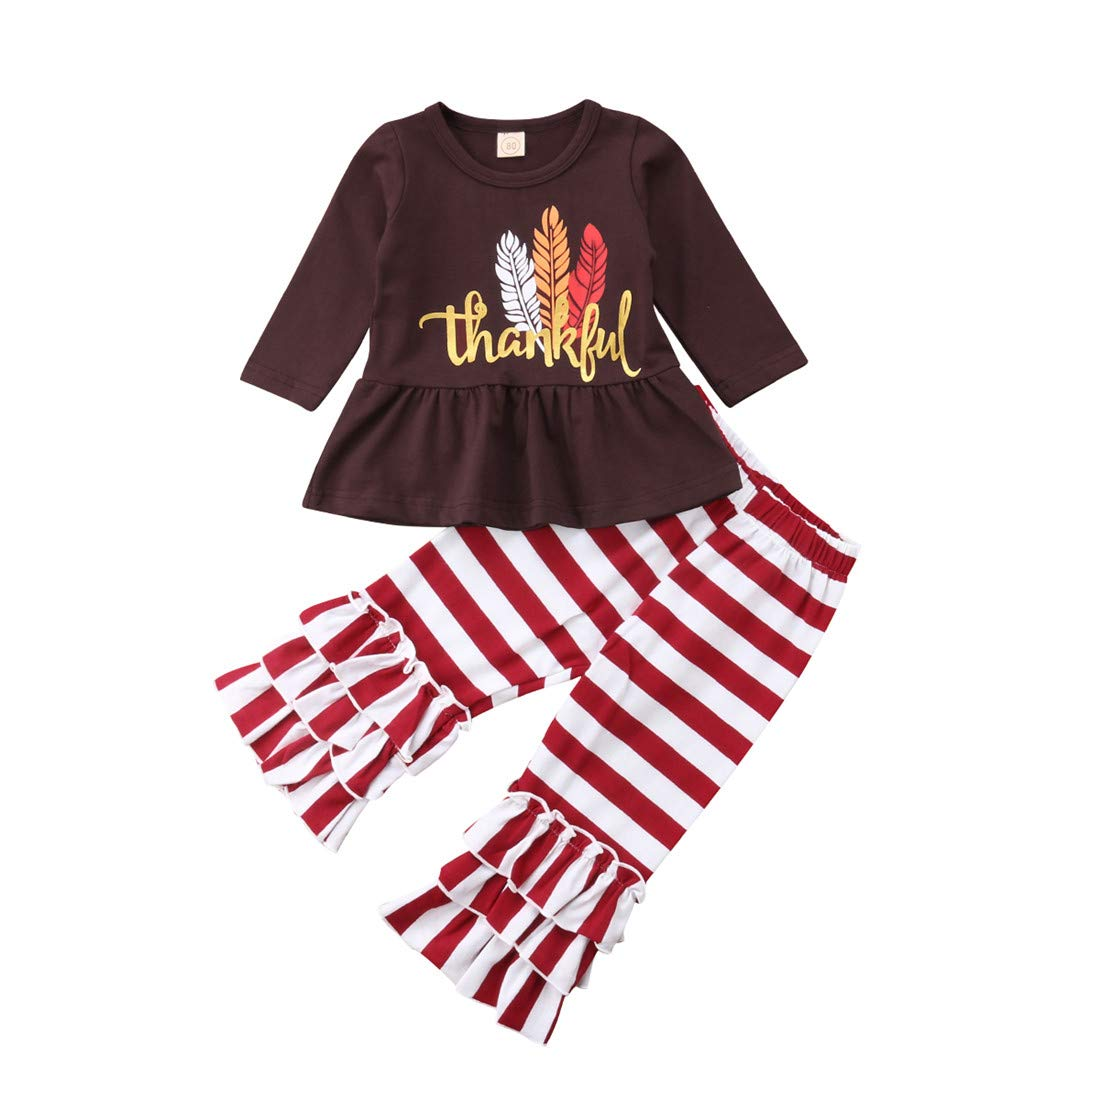 2Pcs/Set Thanksgiving Outfit for Toddler Girls Tutu Top + Strips Flared Pants